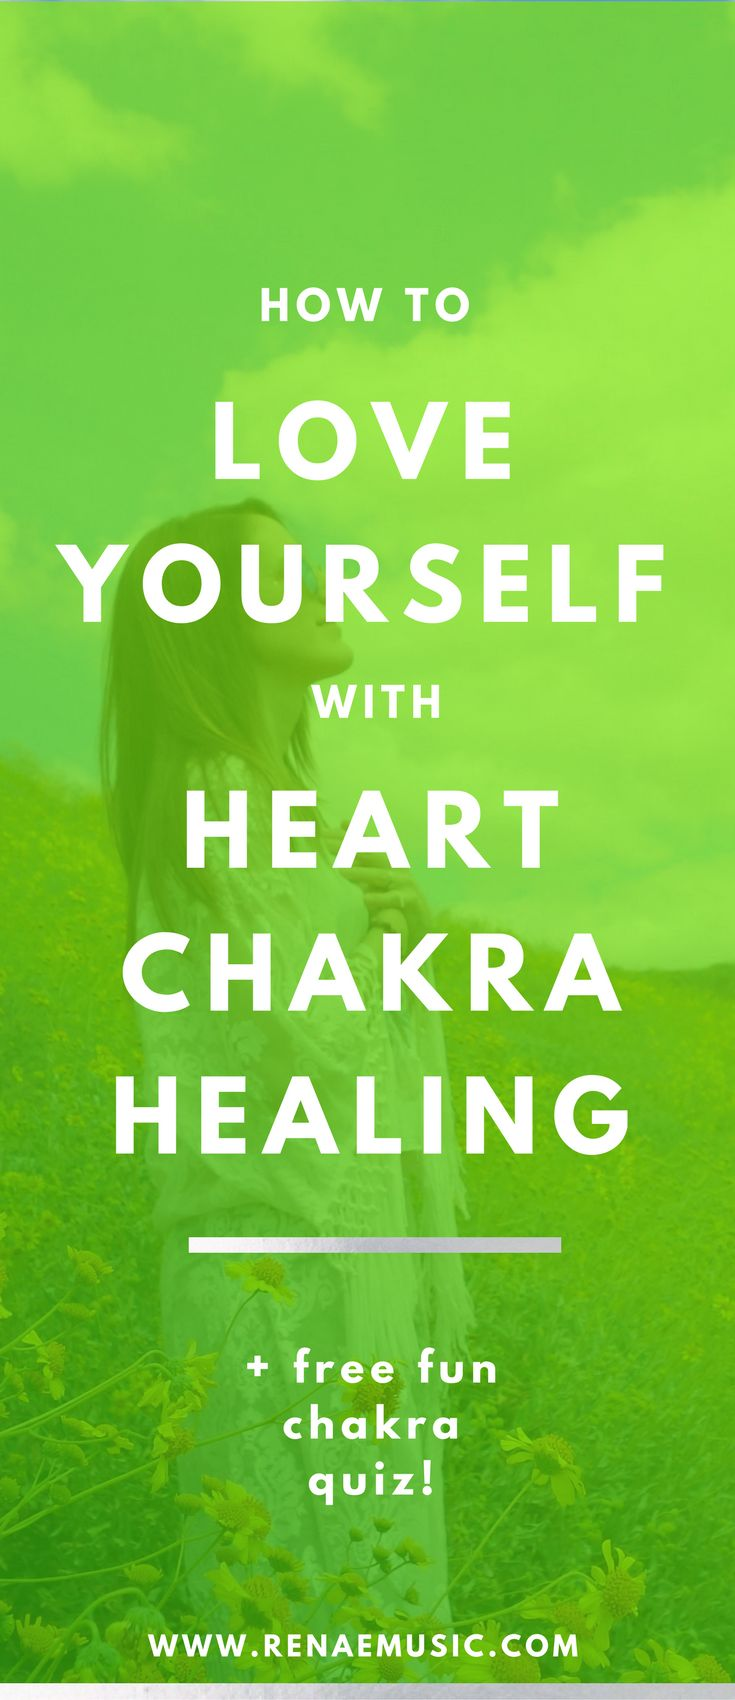 How to love yourself with heart chakra healing. Chakra cleanse, love yourself, chakra meditations, self care routine, self care for women, self care worksheet, meditation for beginners, finding purpose, root chakra, third eye chakra, festival fashion, yog http://kundaliniyogameditation.com/